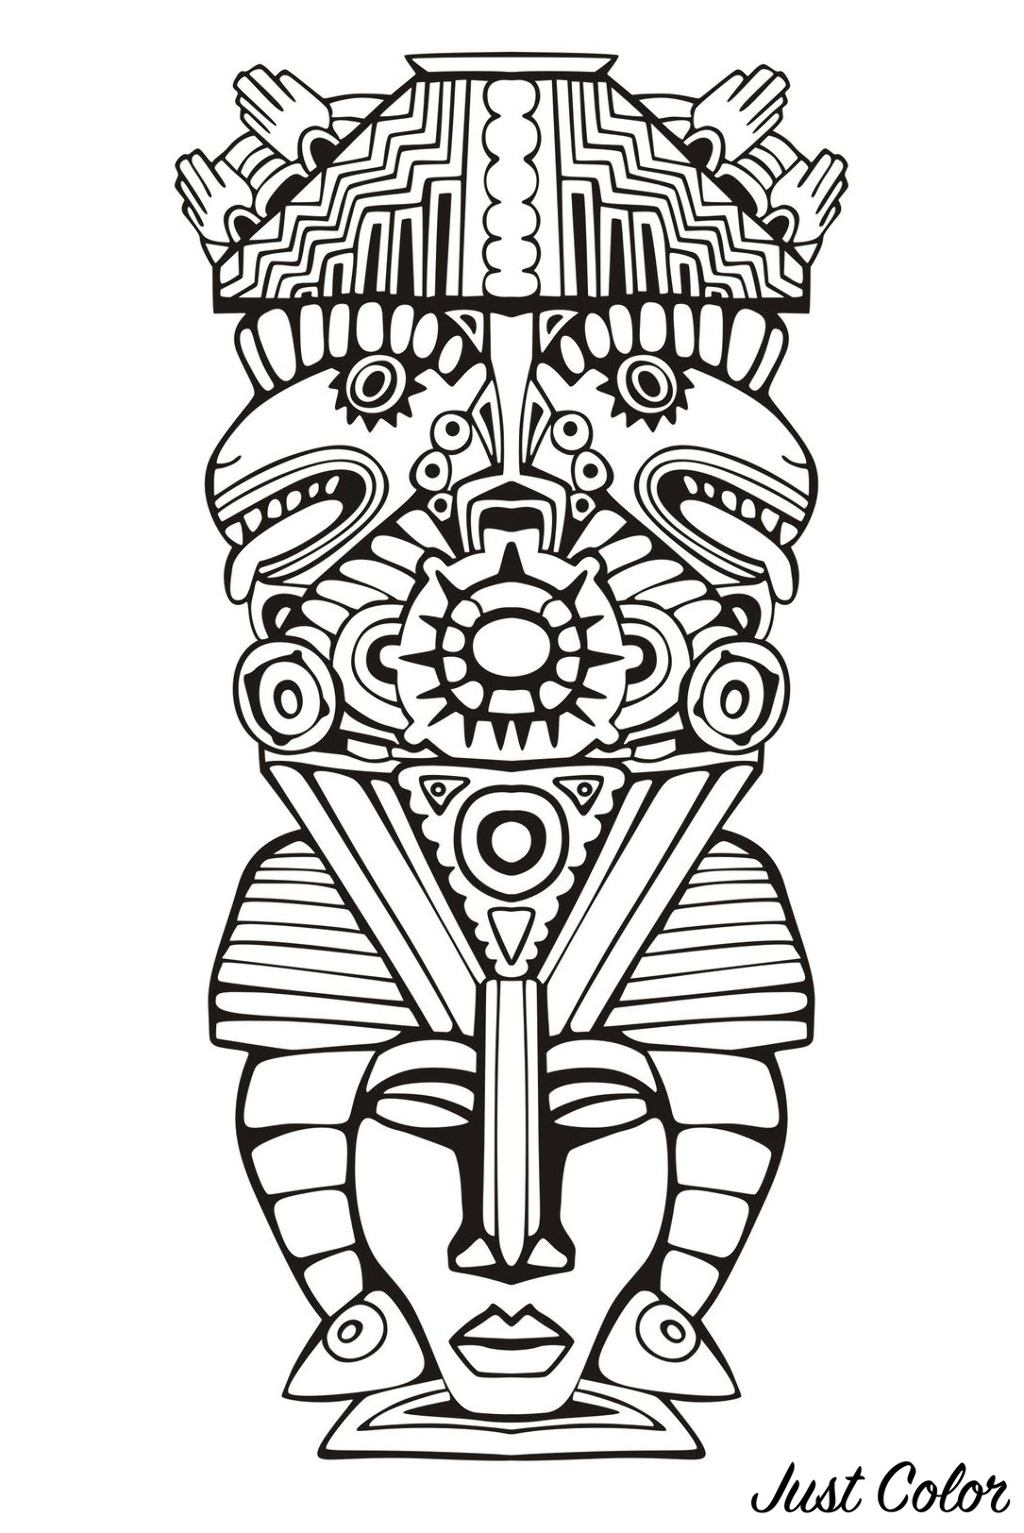 Totem inspired by Aztecs, Mayans and Incas - 6